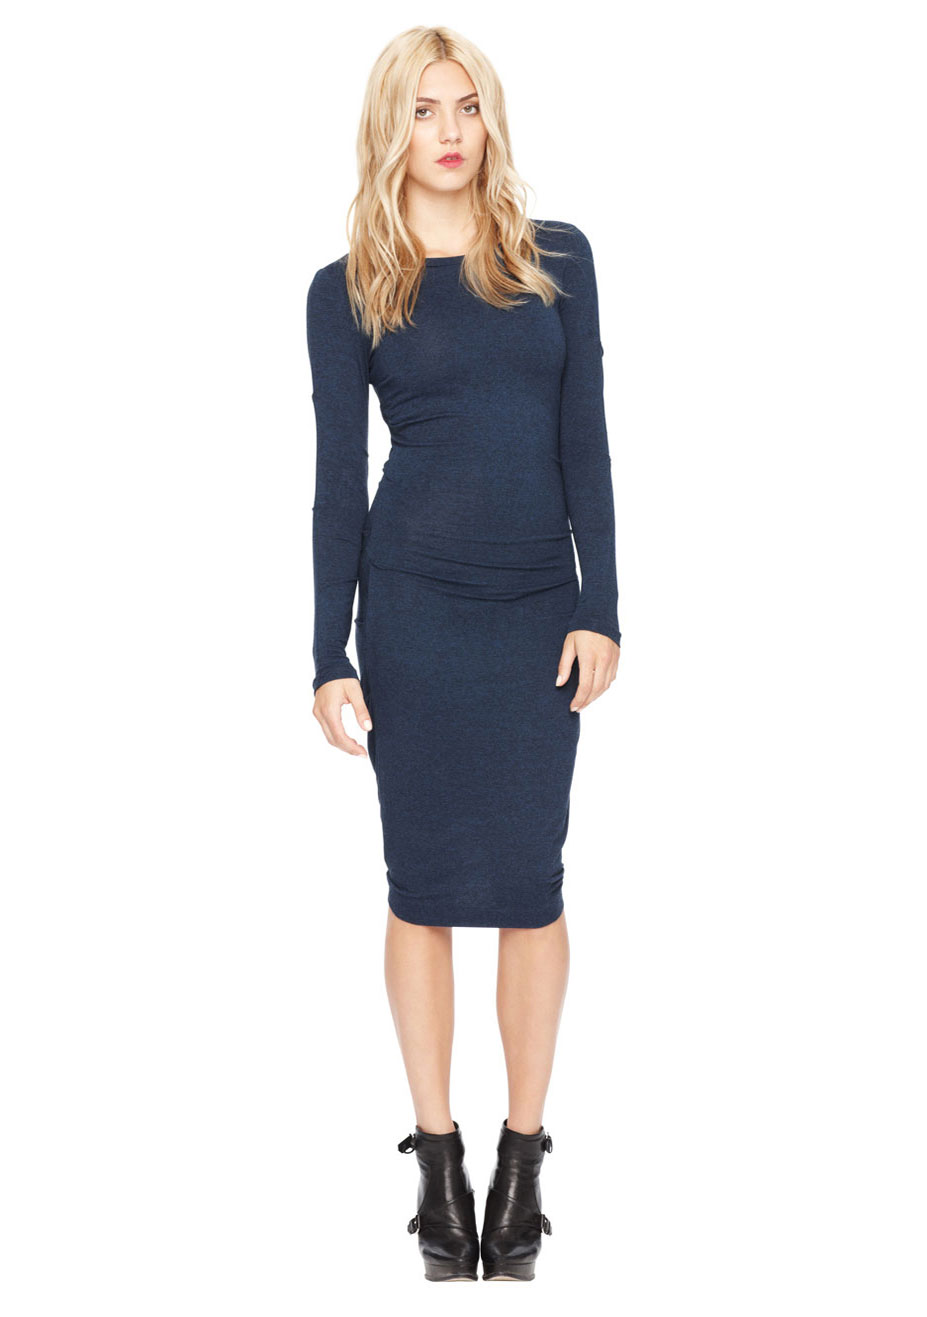 Nicole Miller Jersey Dress